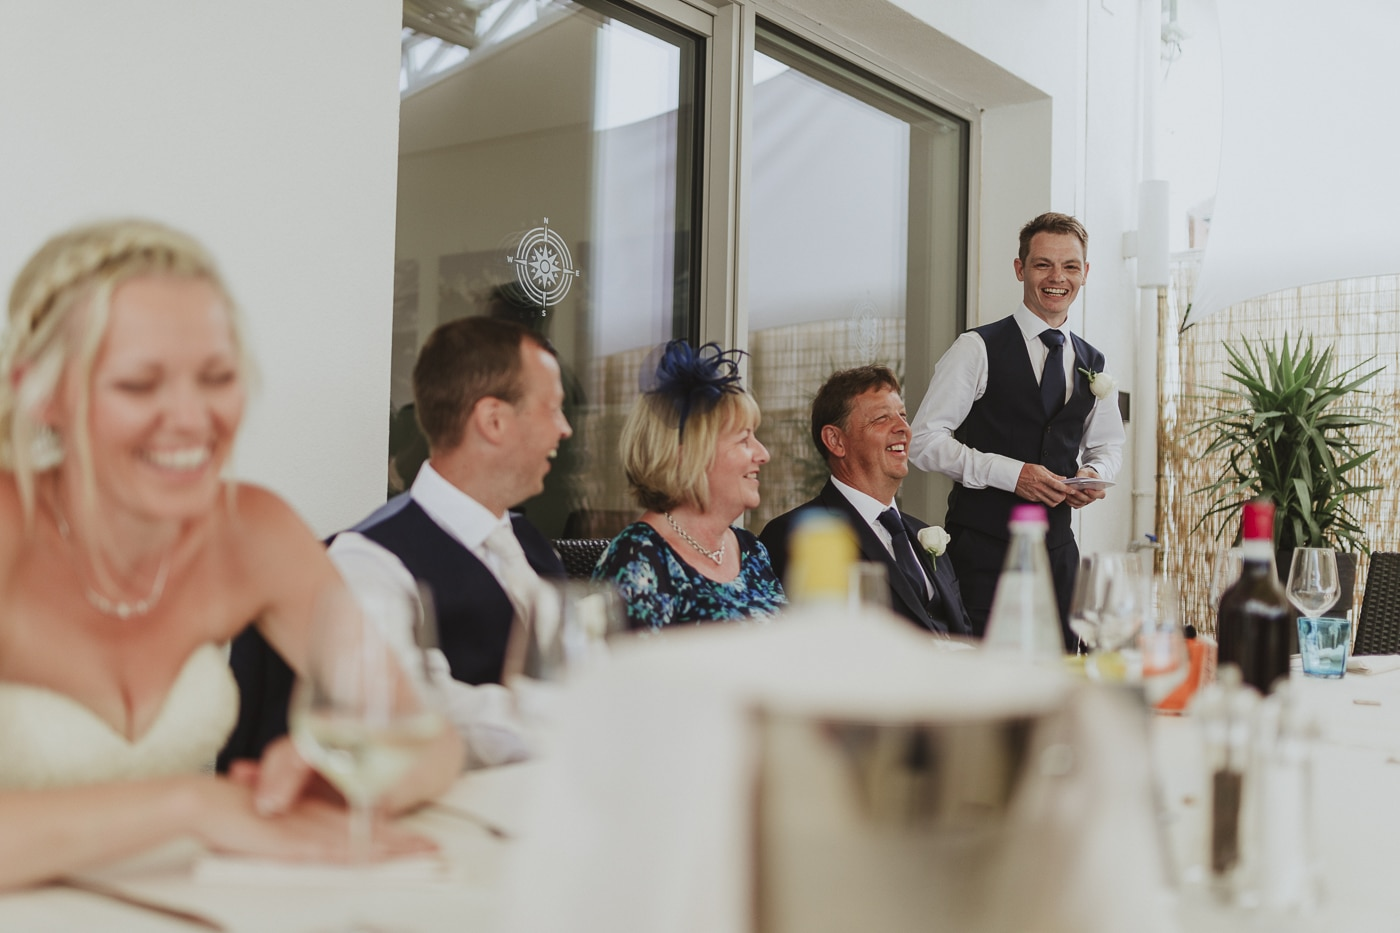 Wedding guests at table during reception speeches with bottles of drink in the foreground by Joshua Wyborn